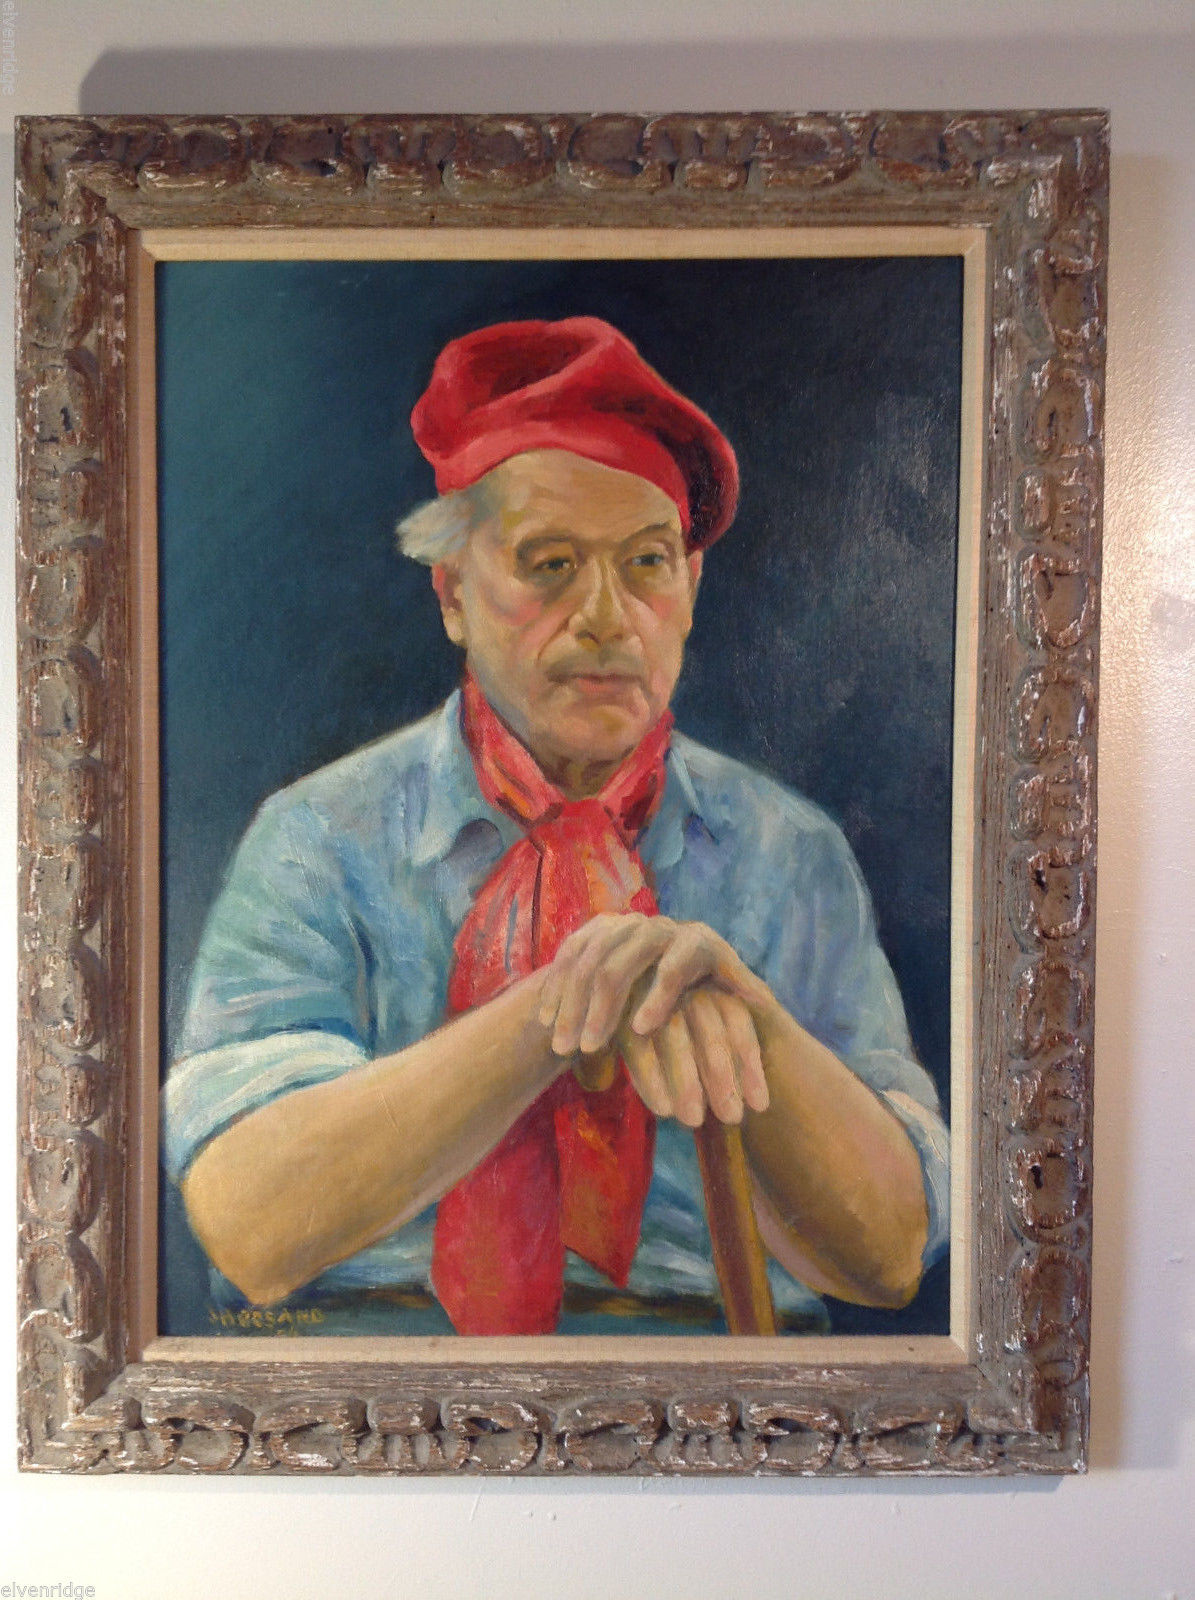 Johan H. Rosand Portrait of Man with Red Beret, Scarf Oil on Canvas Original Art